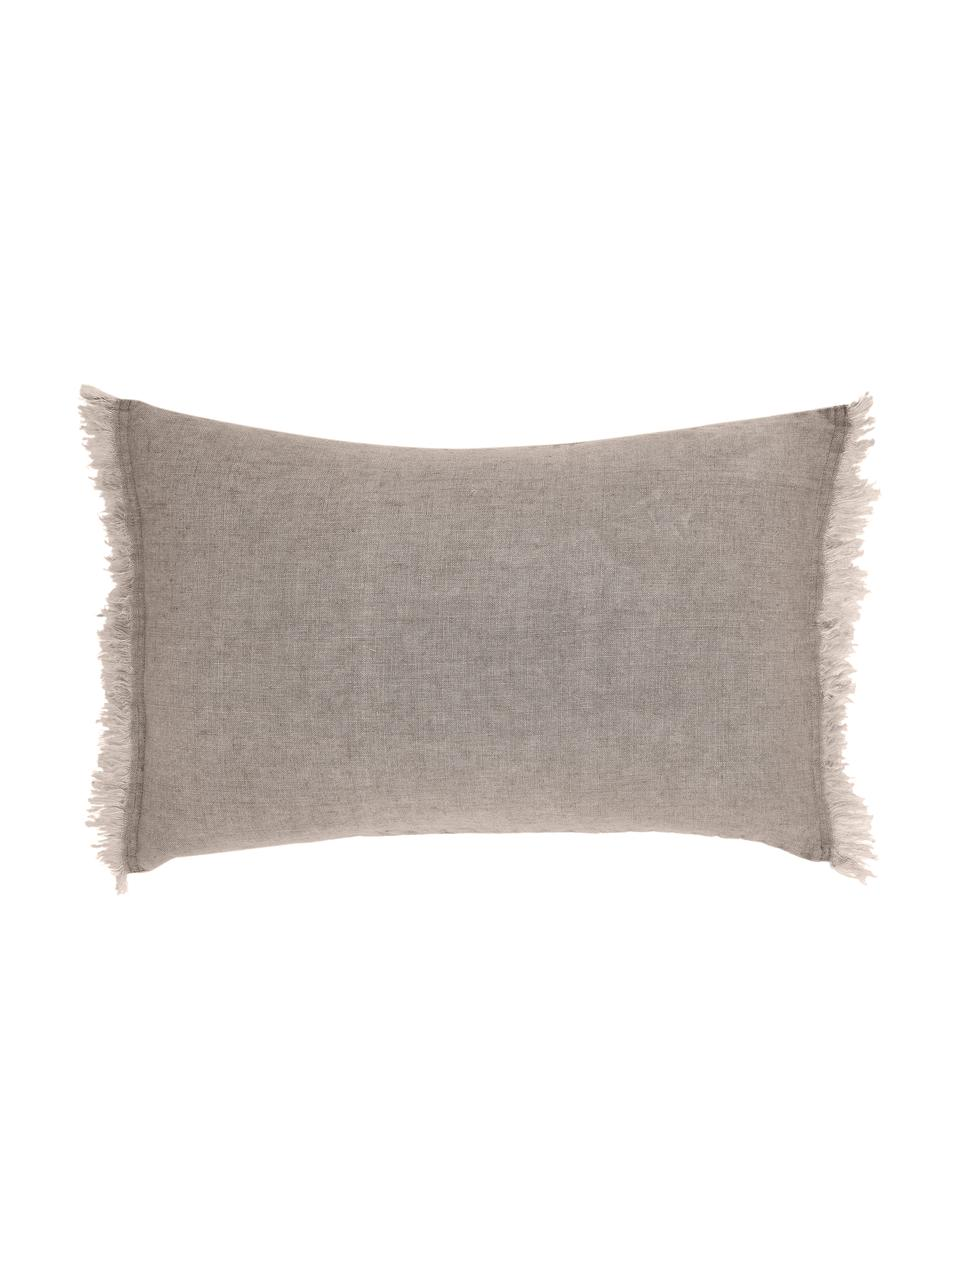 Coussin rectangulaire pur lin beige Levelin, Beige